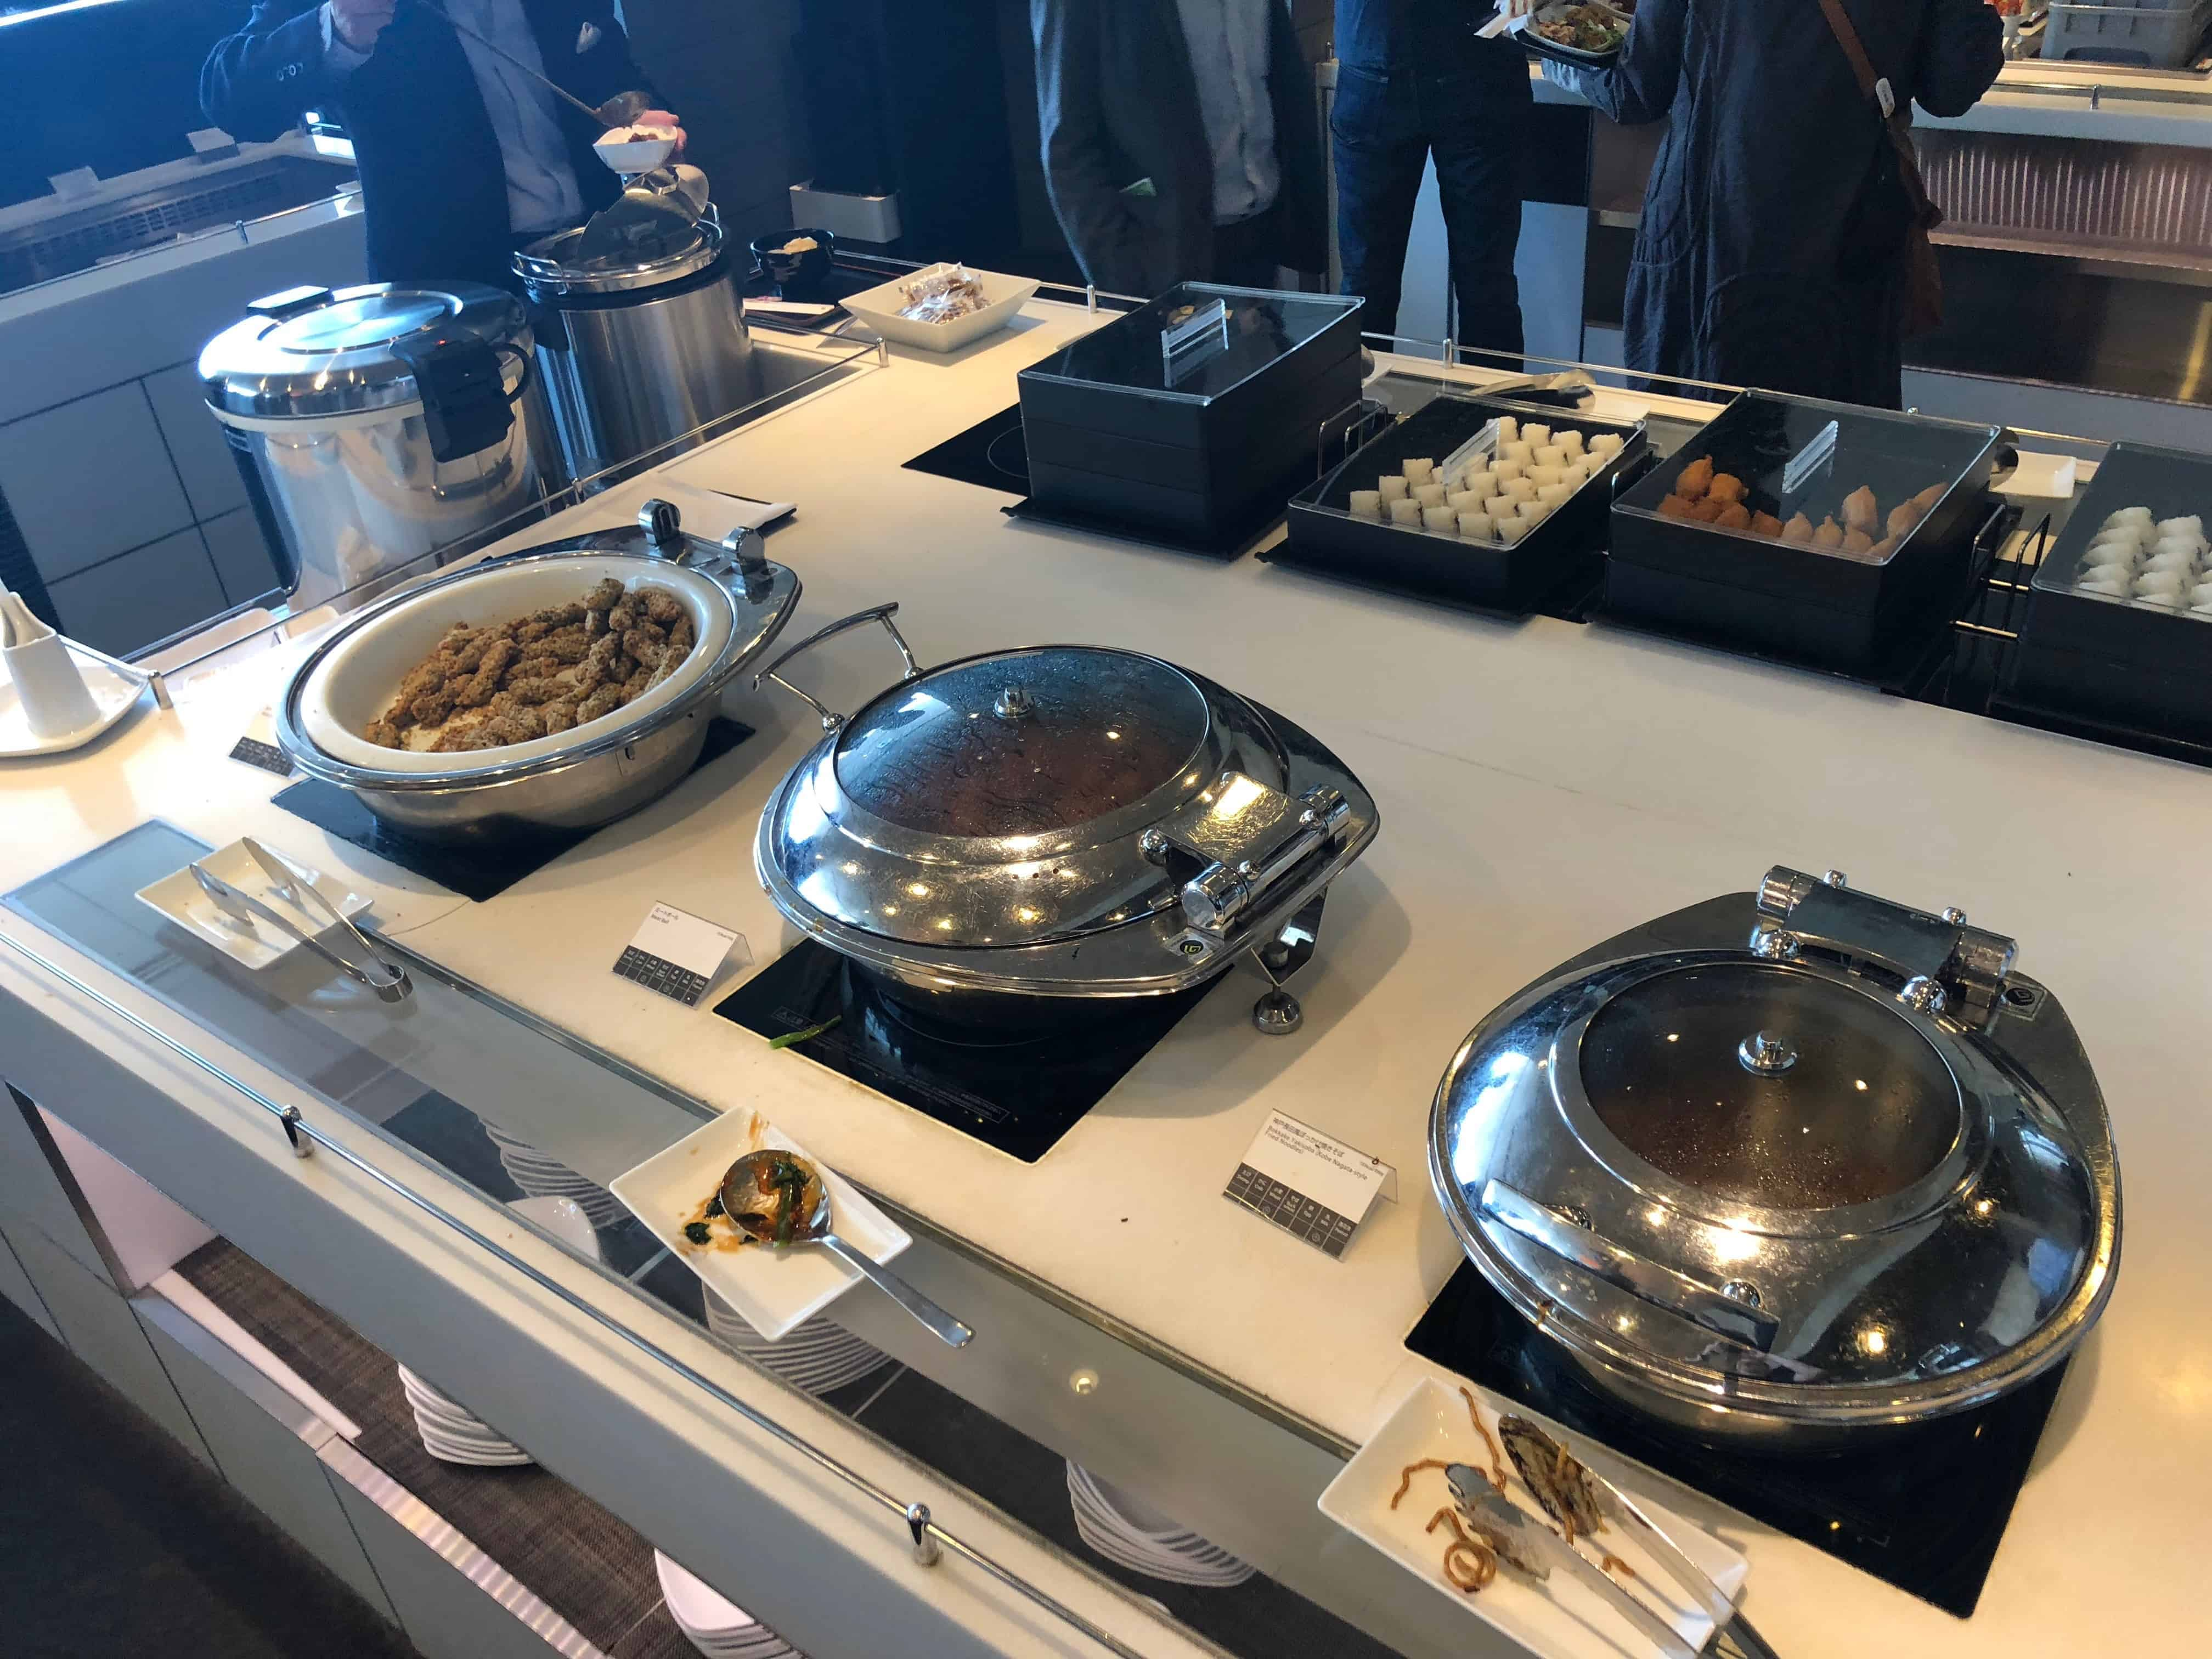 ANA Economy Bewertung Lounge warmes Buffet